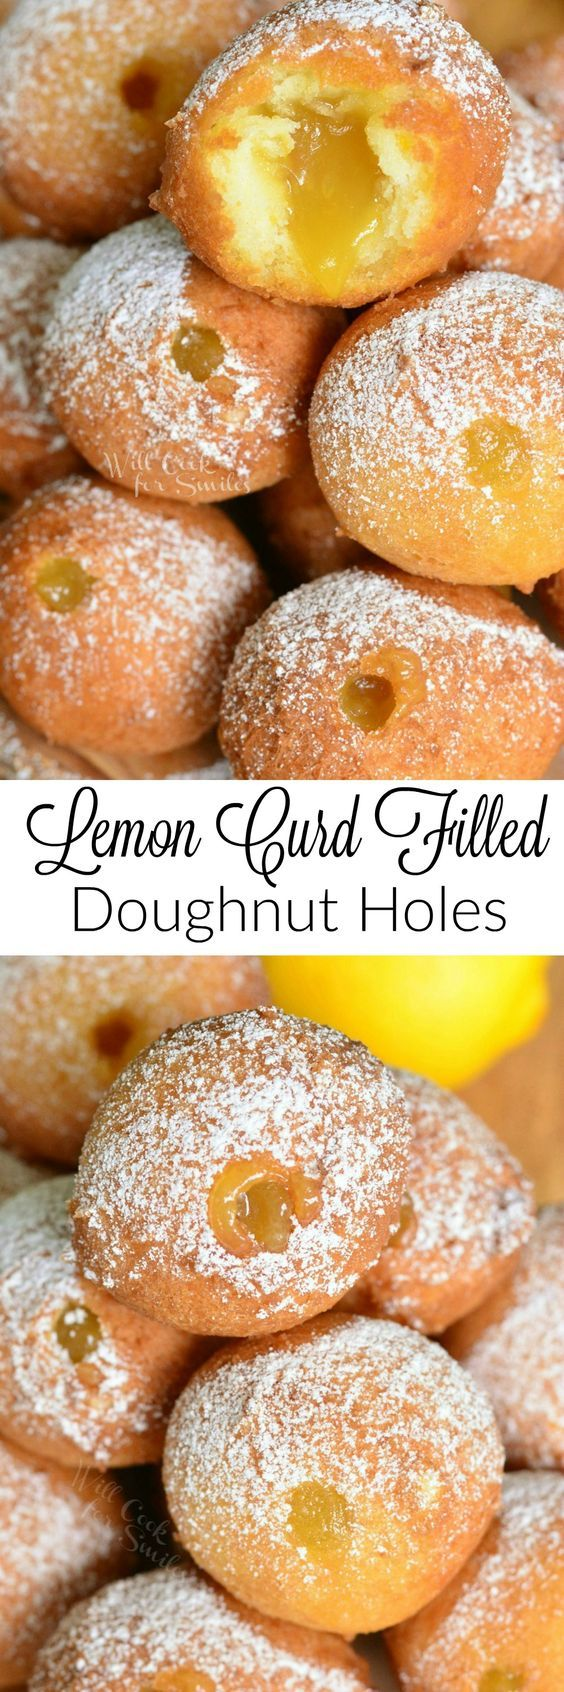 Lemon Curd Filled Doughnut Holes ~ super easy, no-yeast doughnut holes made with a touch of lemon zest and then filled with tangy lemon curd!